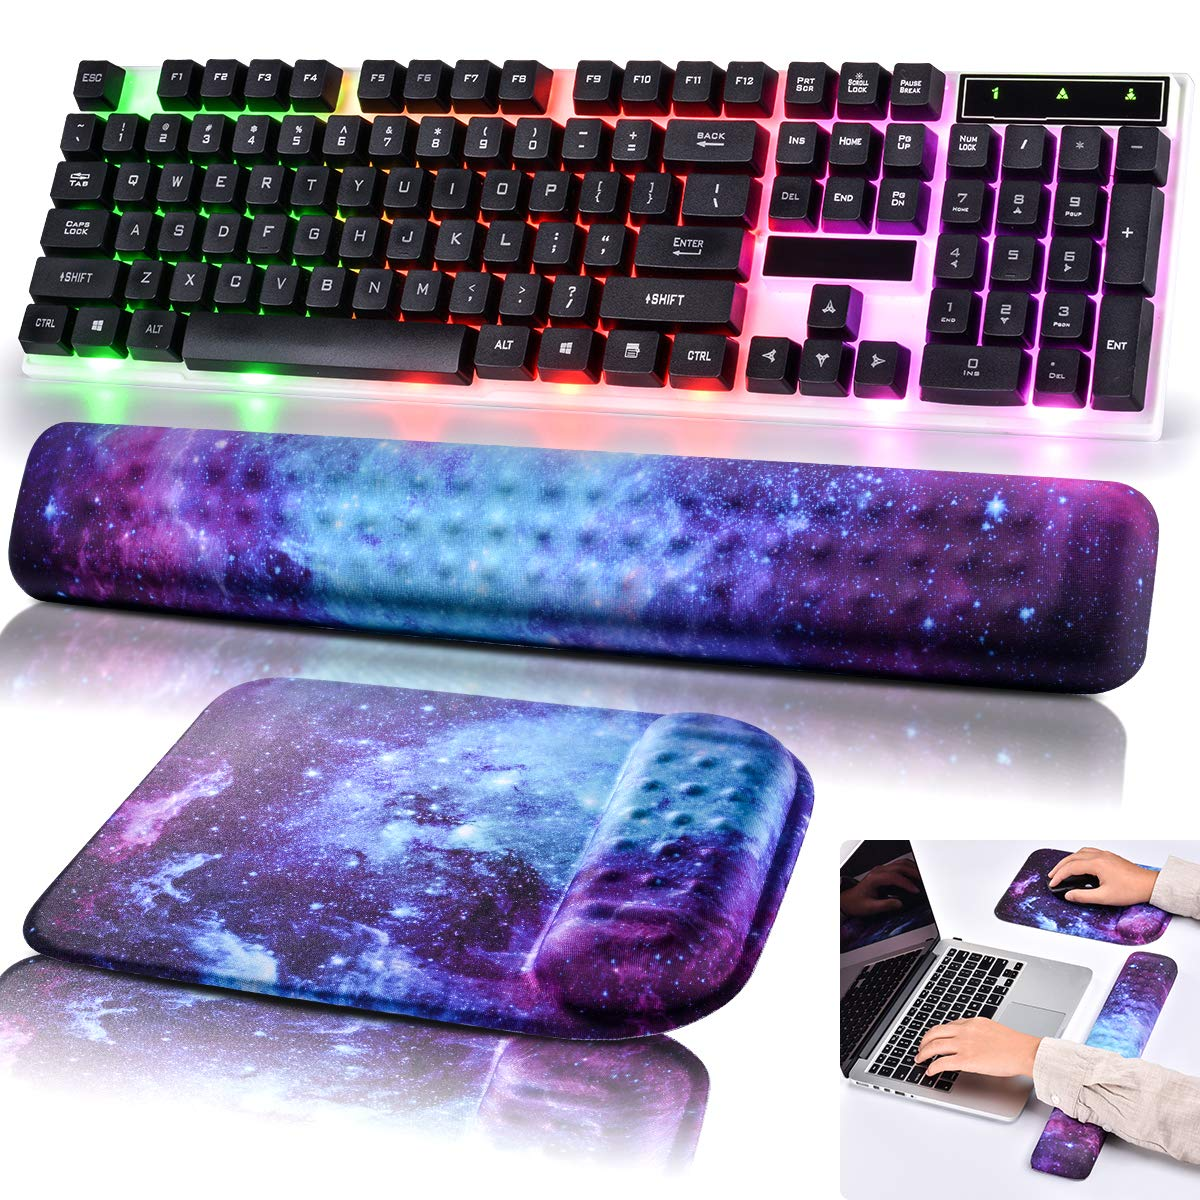 Mouse Pad Keyboard Wrist Rest Non slip Wrist Support Rest Mouse pad for Office,Computer, Laptop, Typist, Gamer, Compact Cushion Pad with Ergonomic Acupoint Massage Support (Starry Night)